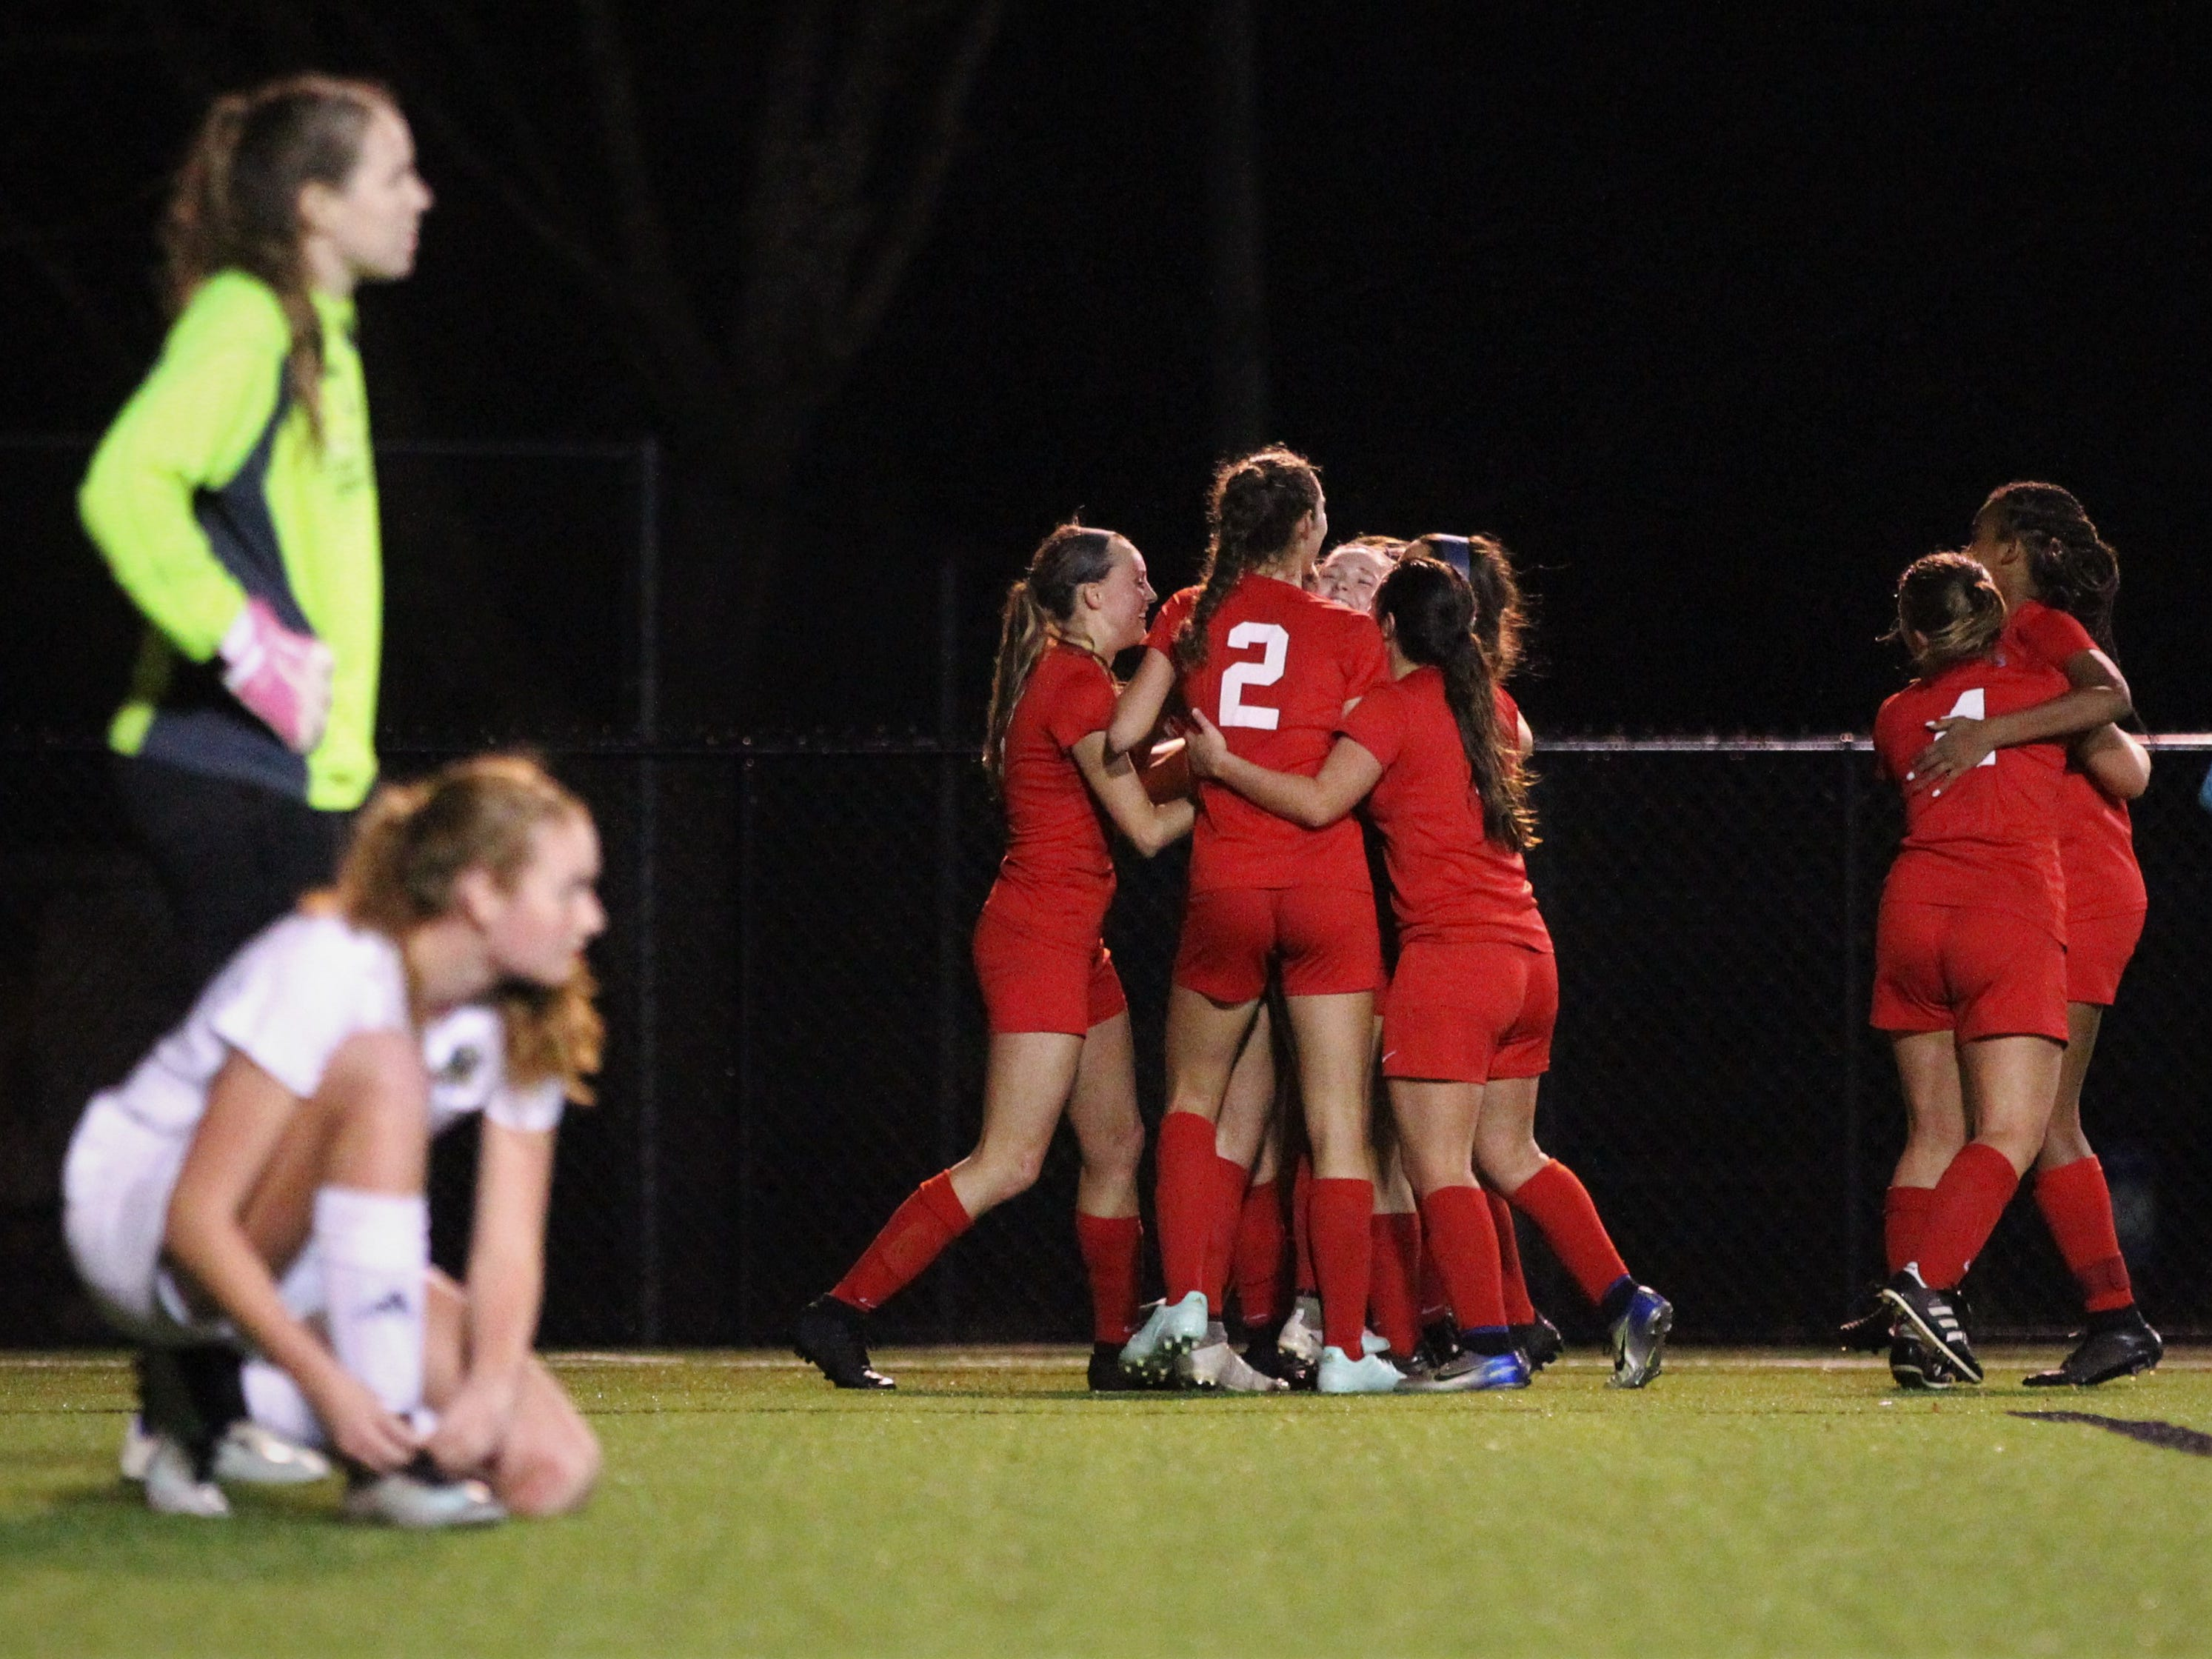 Leon players mob senior Liney Brantley after a game-tying goal that snuck inside the near post on a corner kick as Leon's girls soccer team beat Lincoln 2-1 in the District 2-4A championship at Gene Cox Stadium on Feb. 1, 2019.